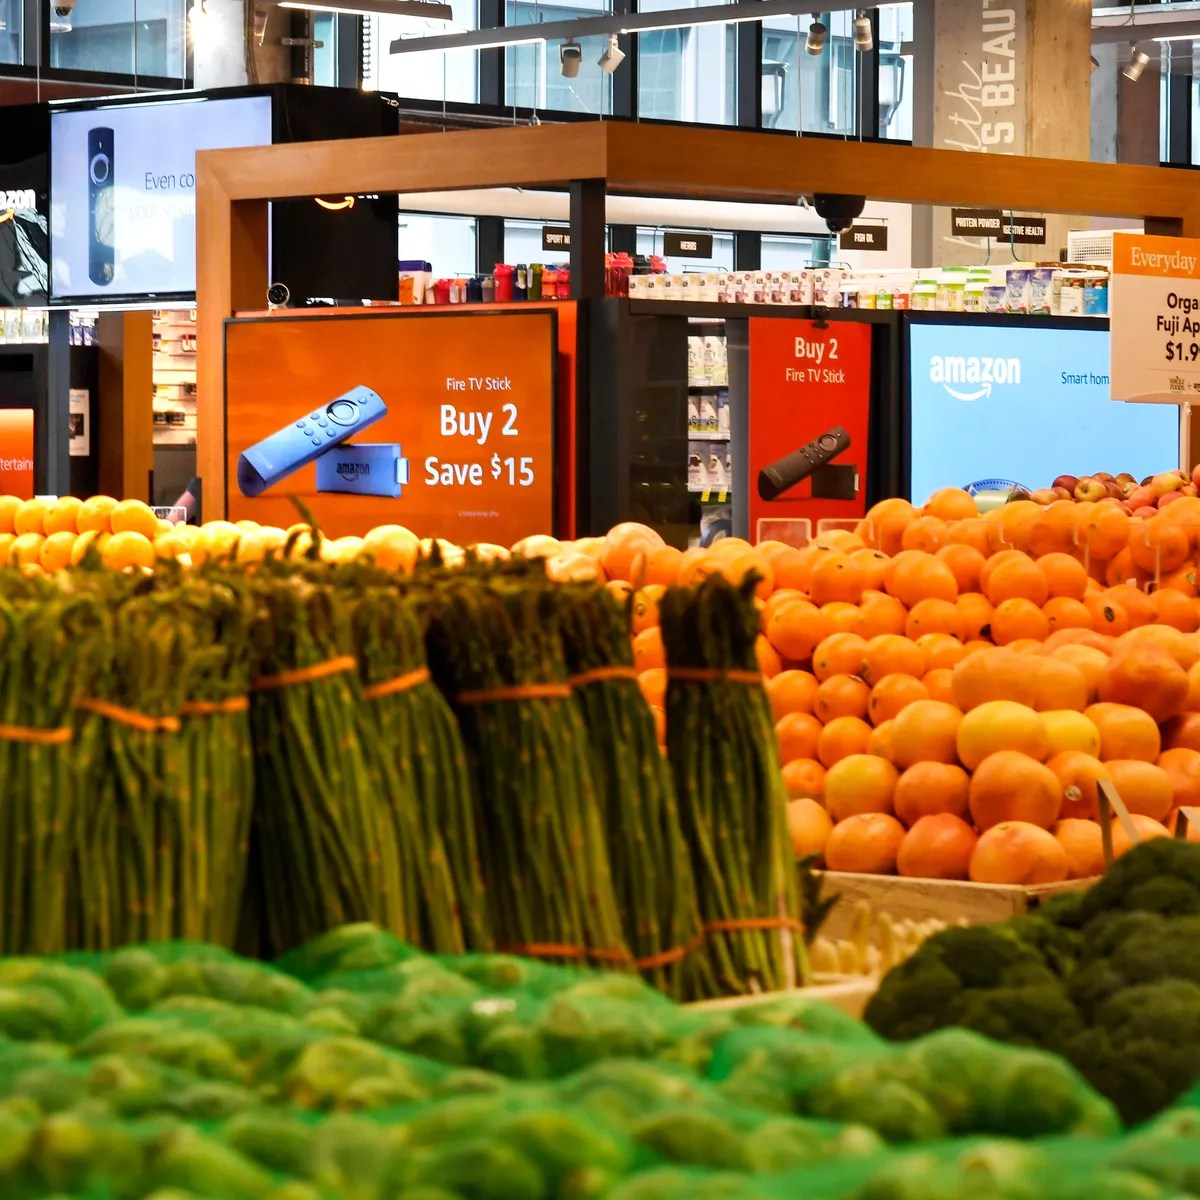 Amazon Whole Foods Amazon Will Finally Discontinue Whole Foods Loyalty Program